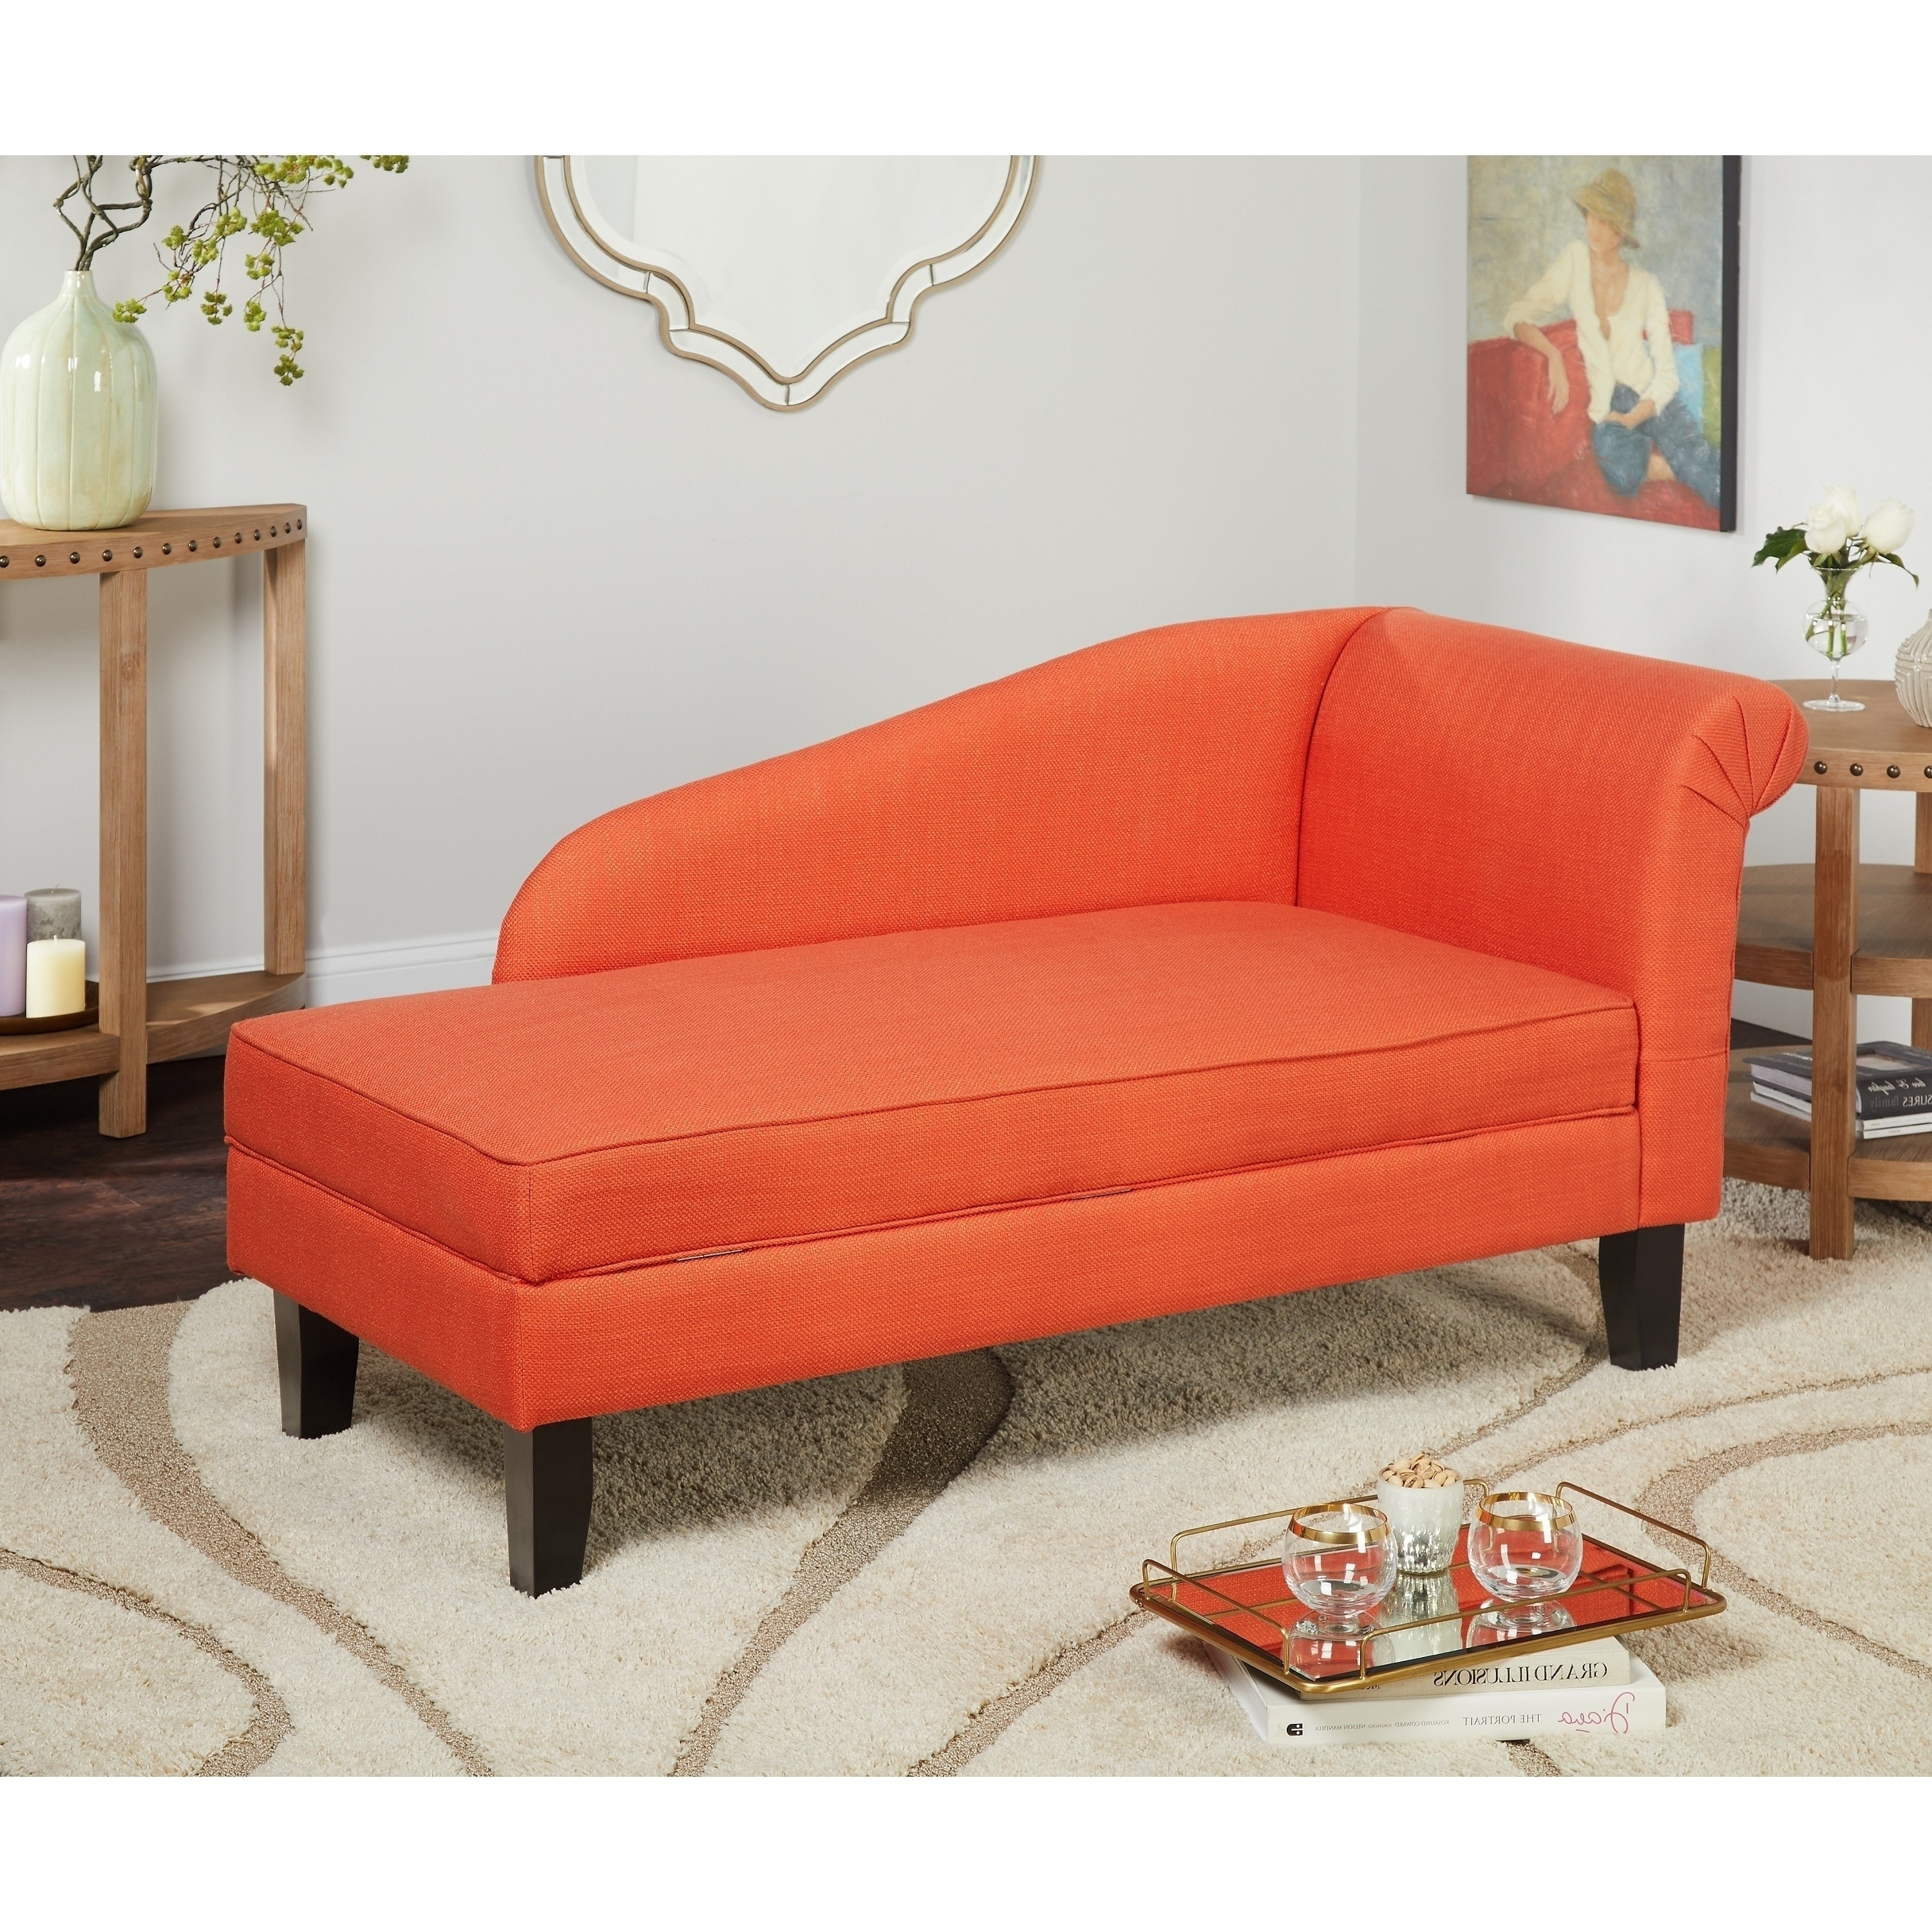 Orange Chaise Lounges Inside Newest Simple Living Chaise Lounge With Storage Compartment – Free (View 9 of 15)